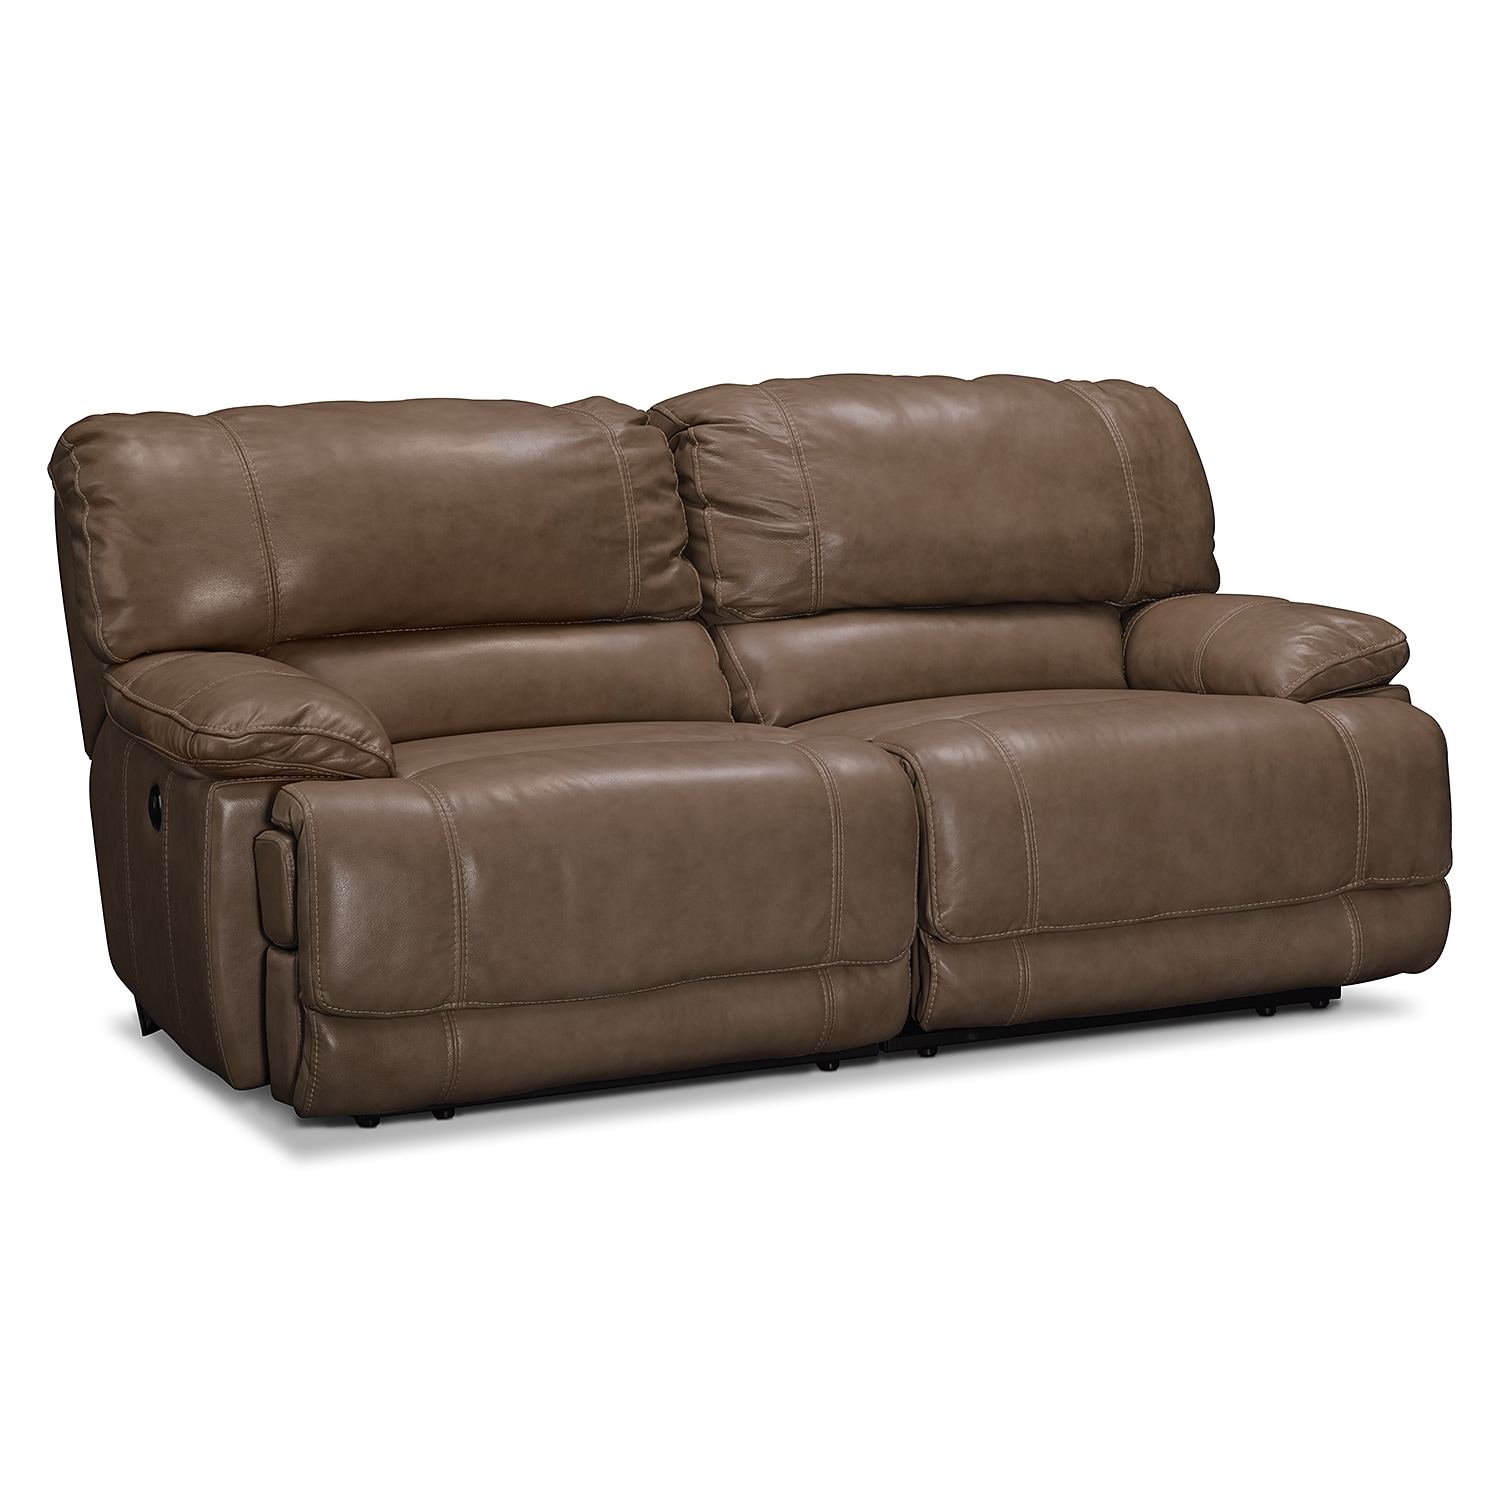 St malo ii 2 pc power reclining sofa value city furniture Power loveseat recliner